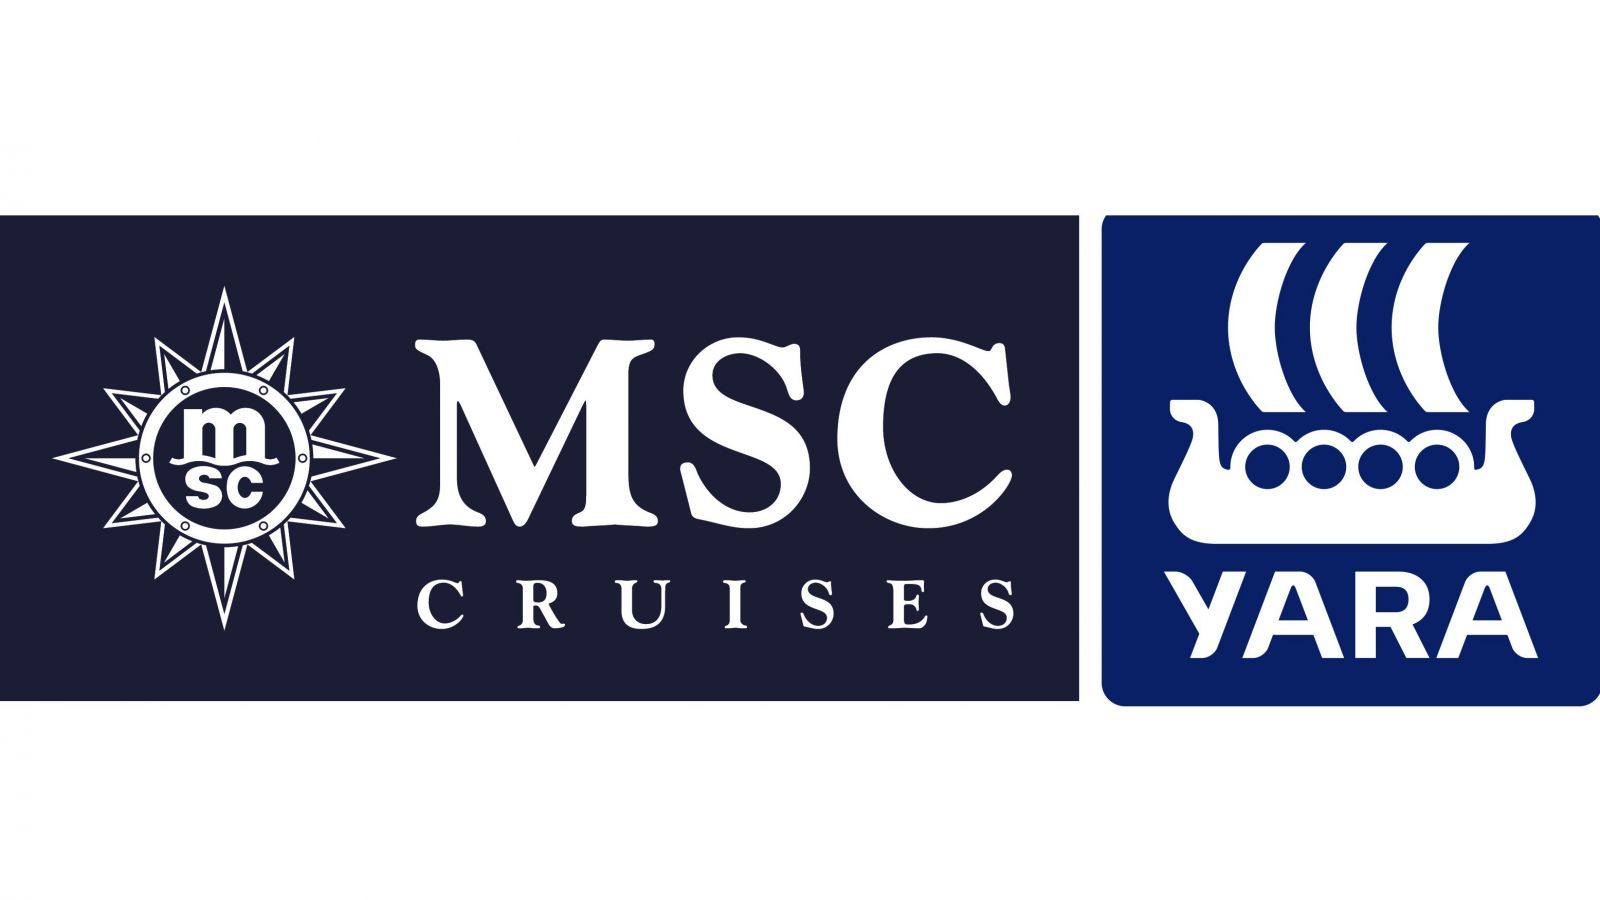 MSC cruise & Yara